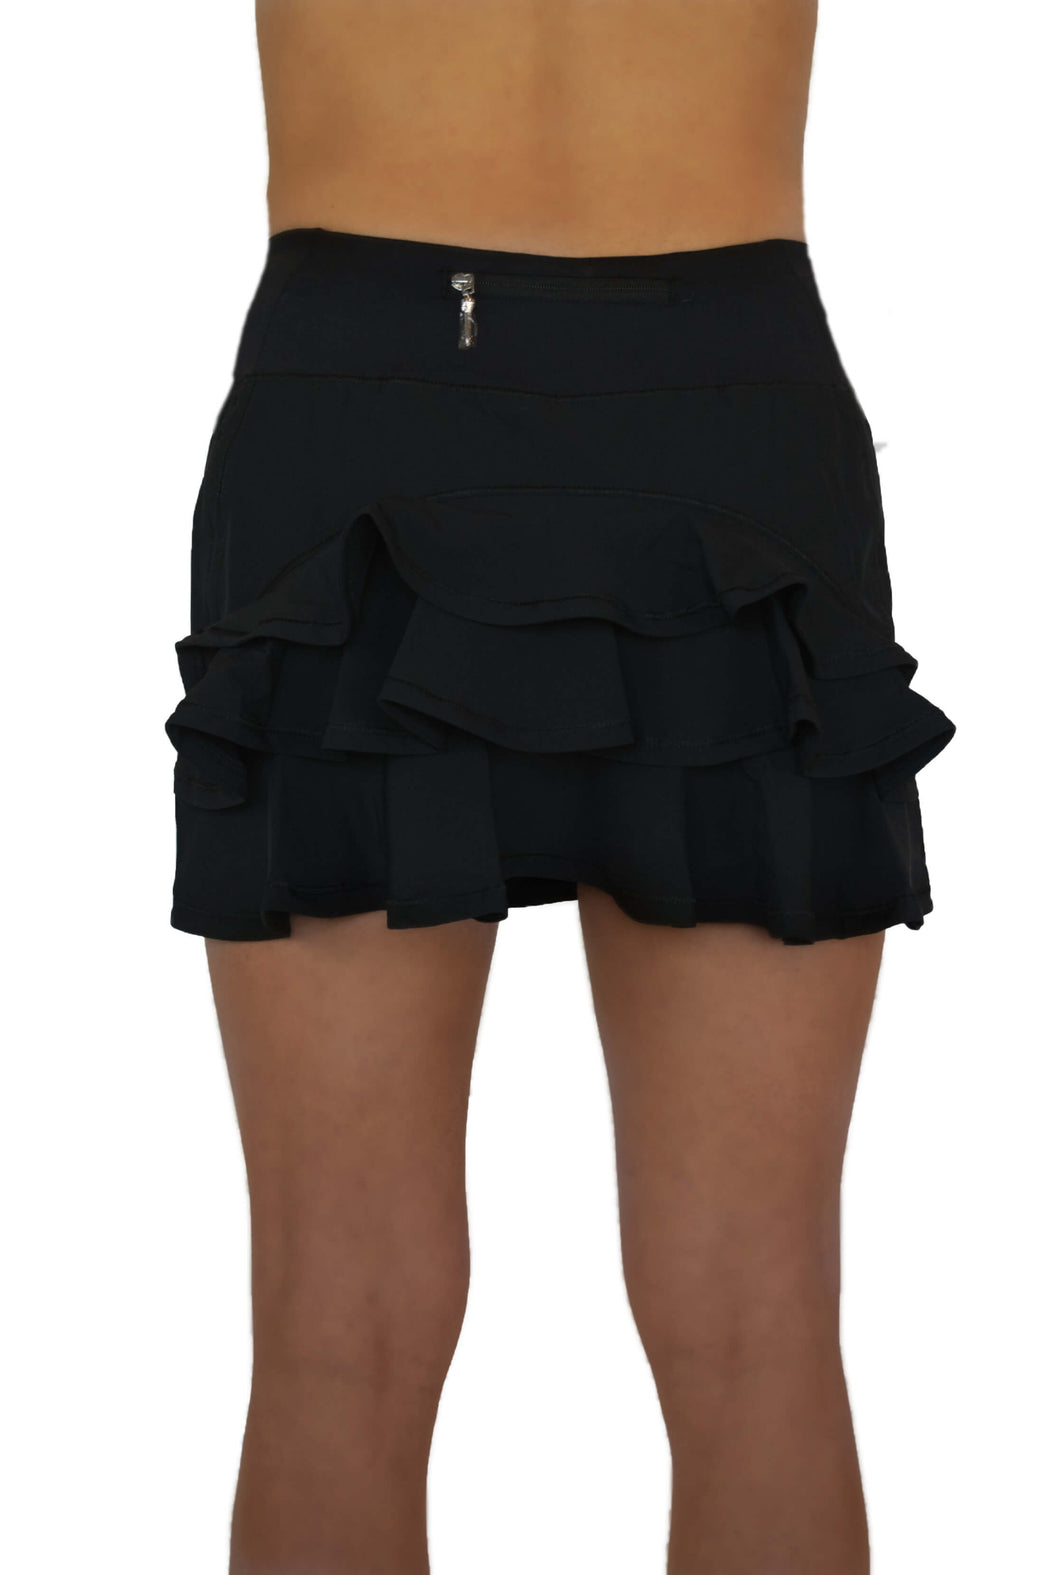 NEW! Ruffle Butt Golf Skirt - Black - FlirTee Golf